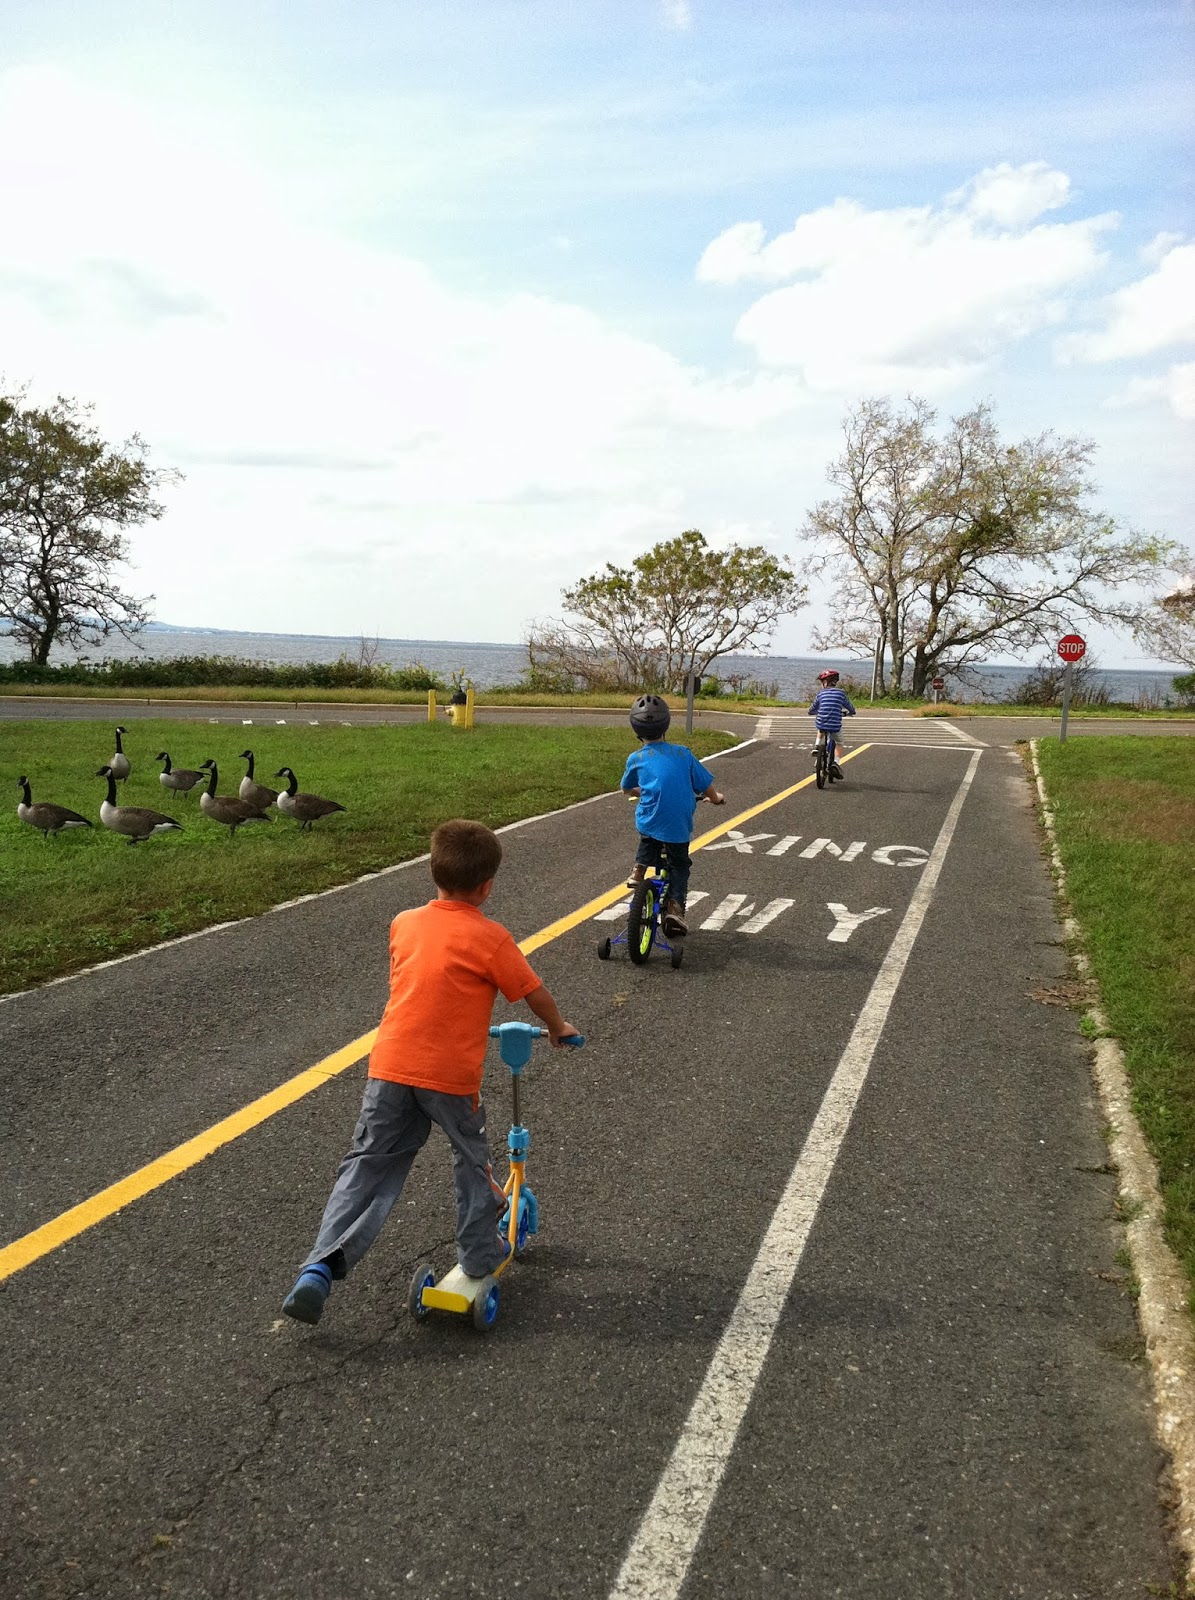 taking off the training wheels and learning to ride